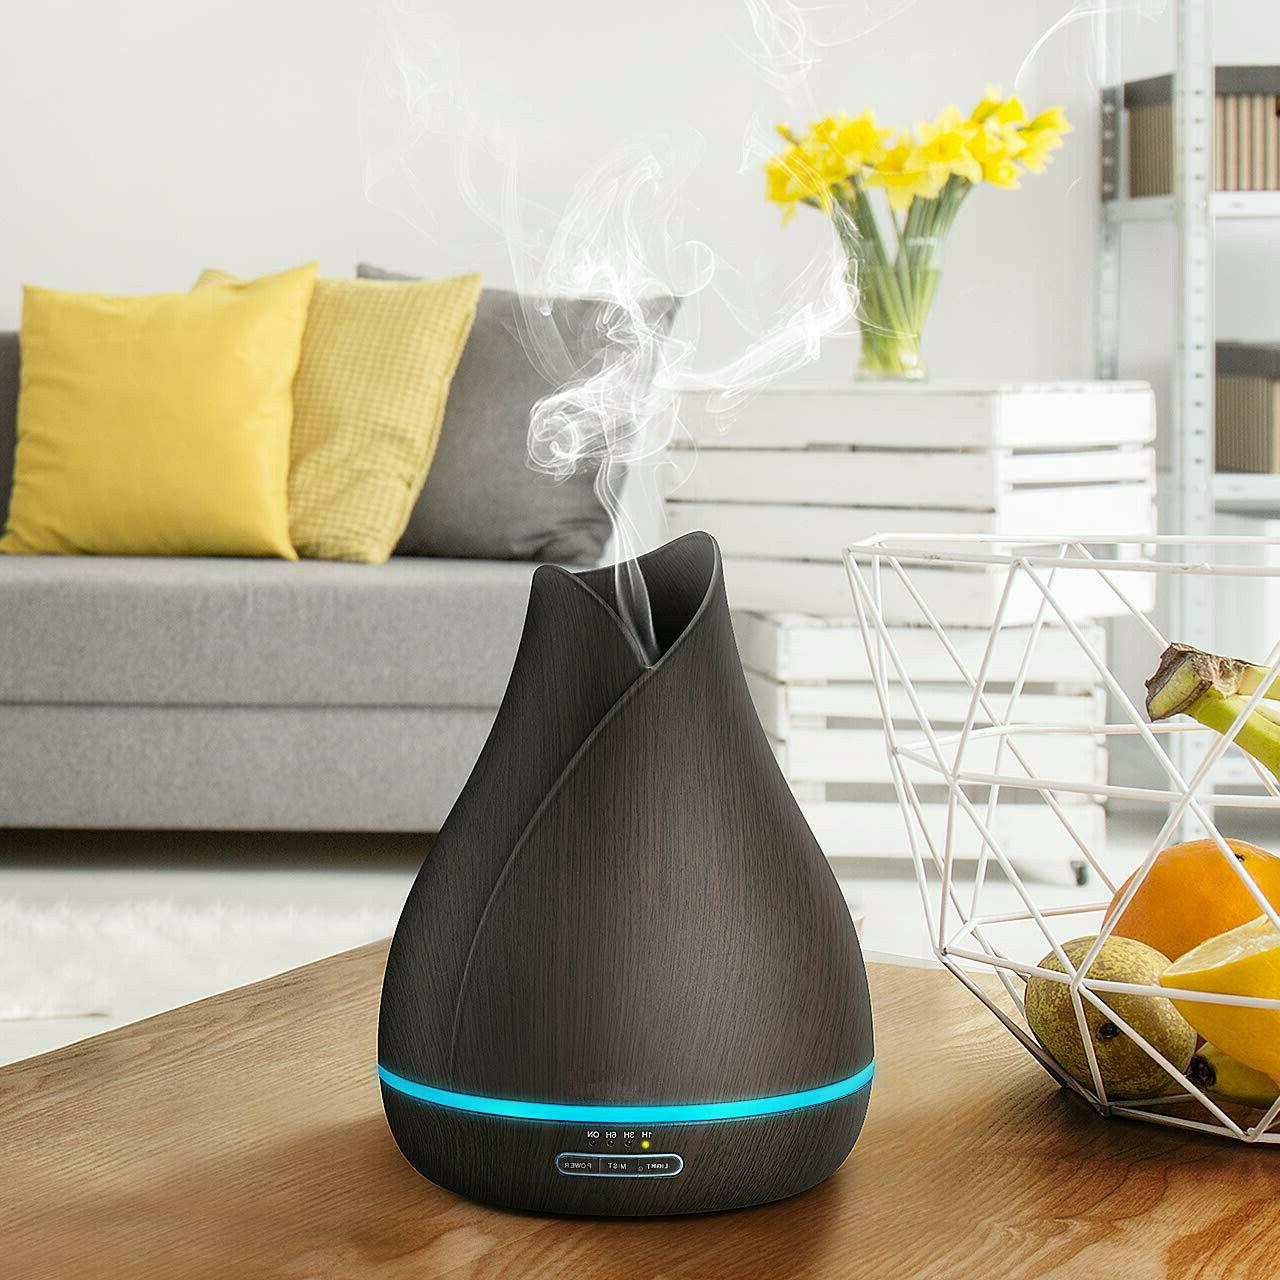 500ml essential oil diffuser with ultra quiet